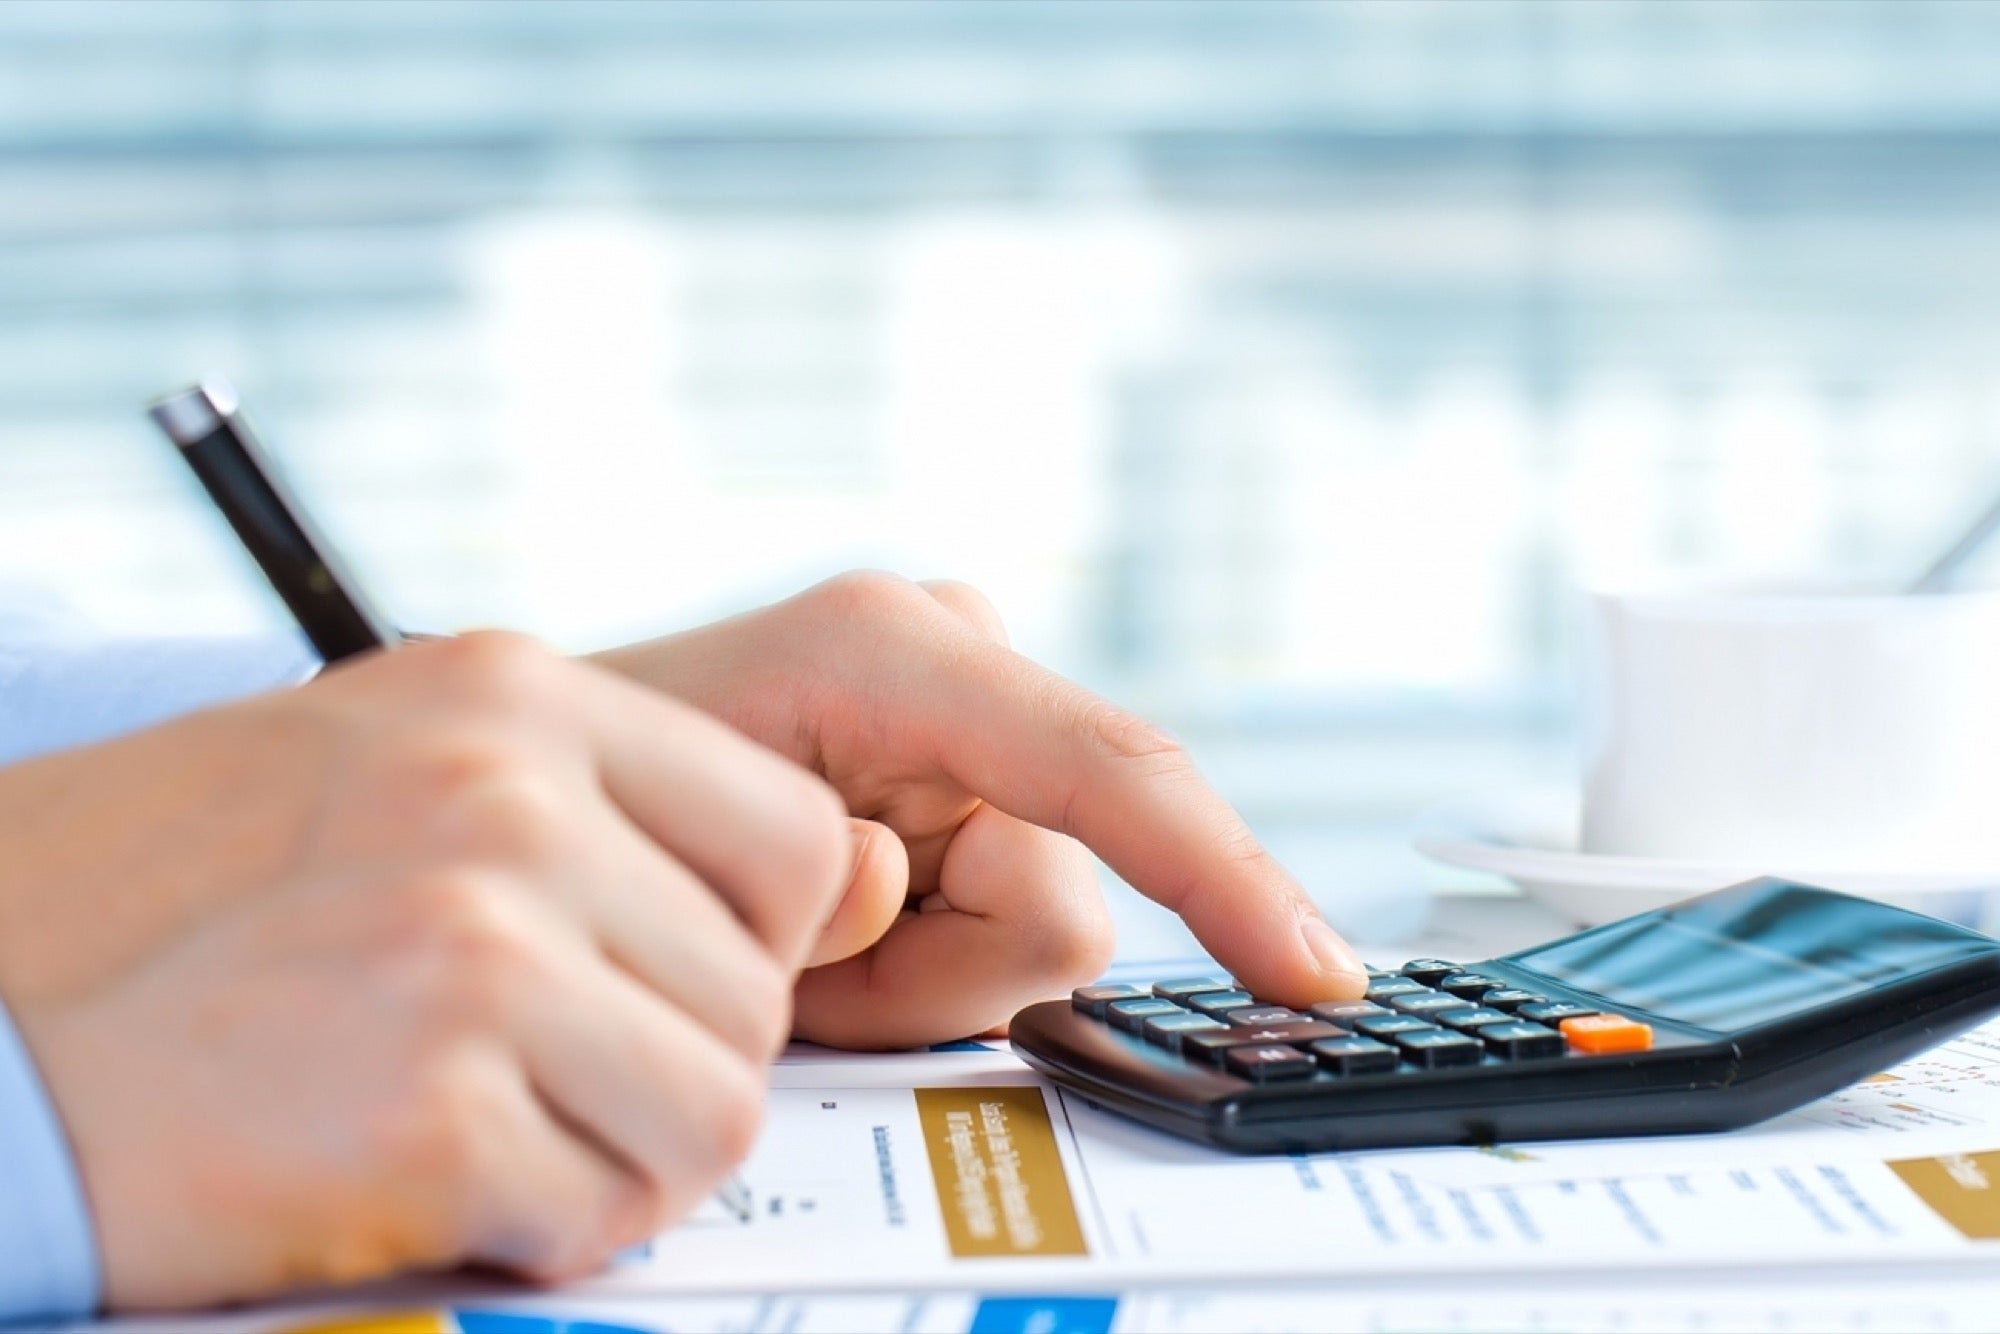 Keep Your Business Finances in Order With These 6 Tips